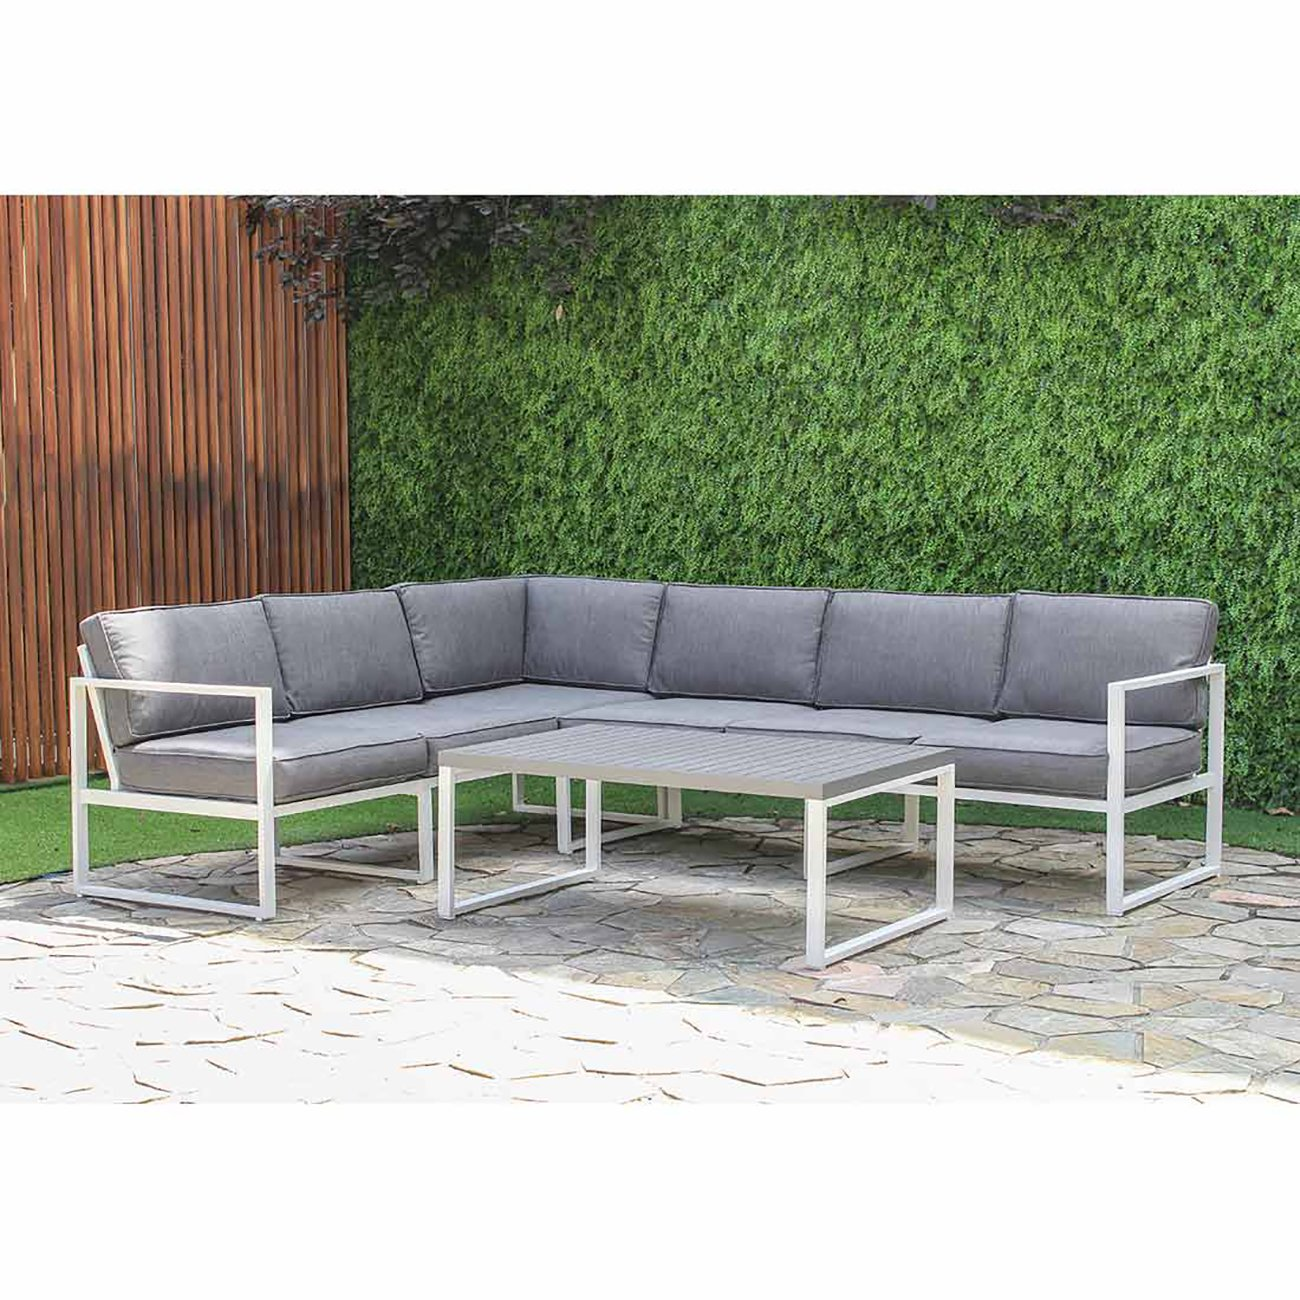 gartenlounge outliv indianapolis loungeecke 3 teilig aluminium polsterung sitzbank garten g nstig. Black Bedroom Furniture Sets. Home Design Ideas